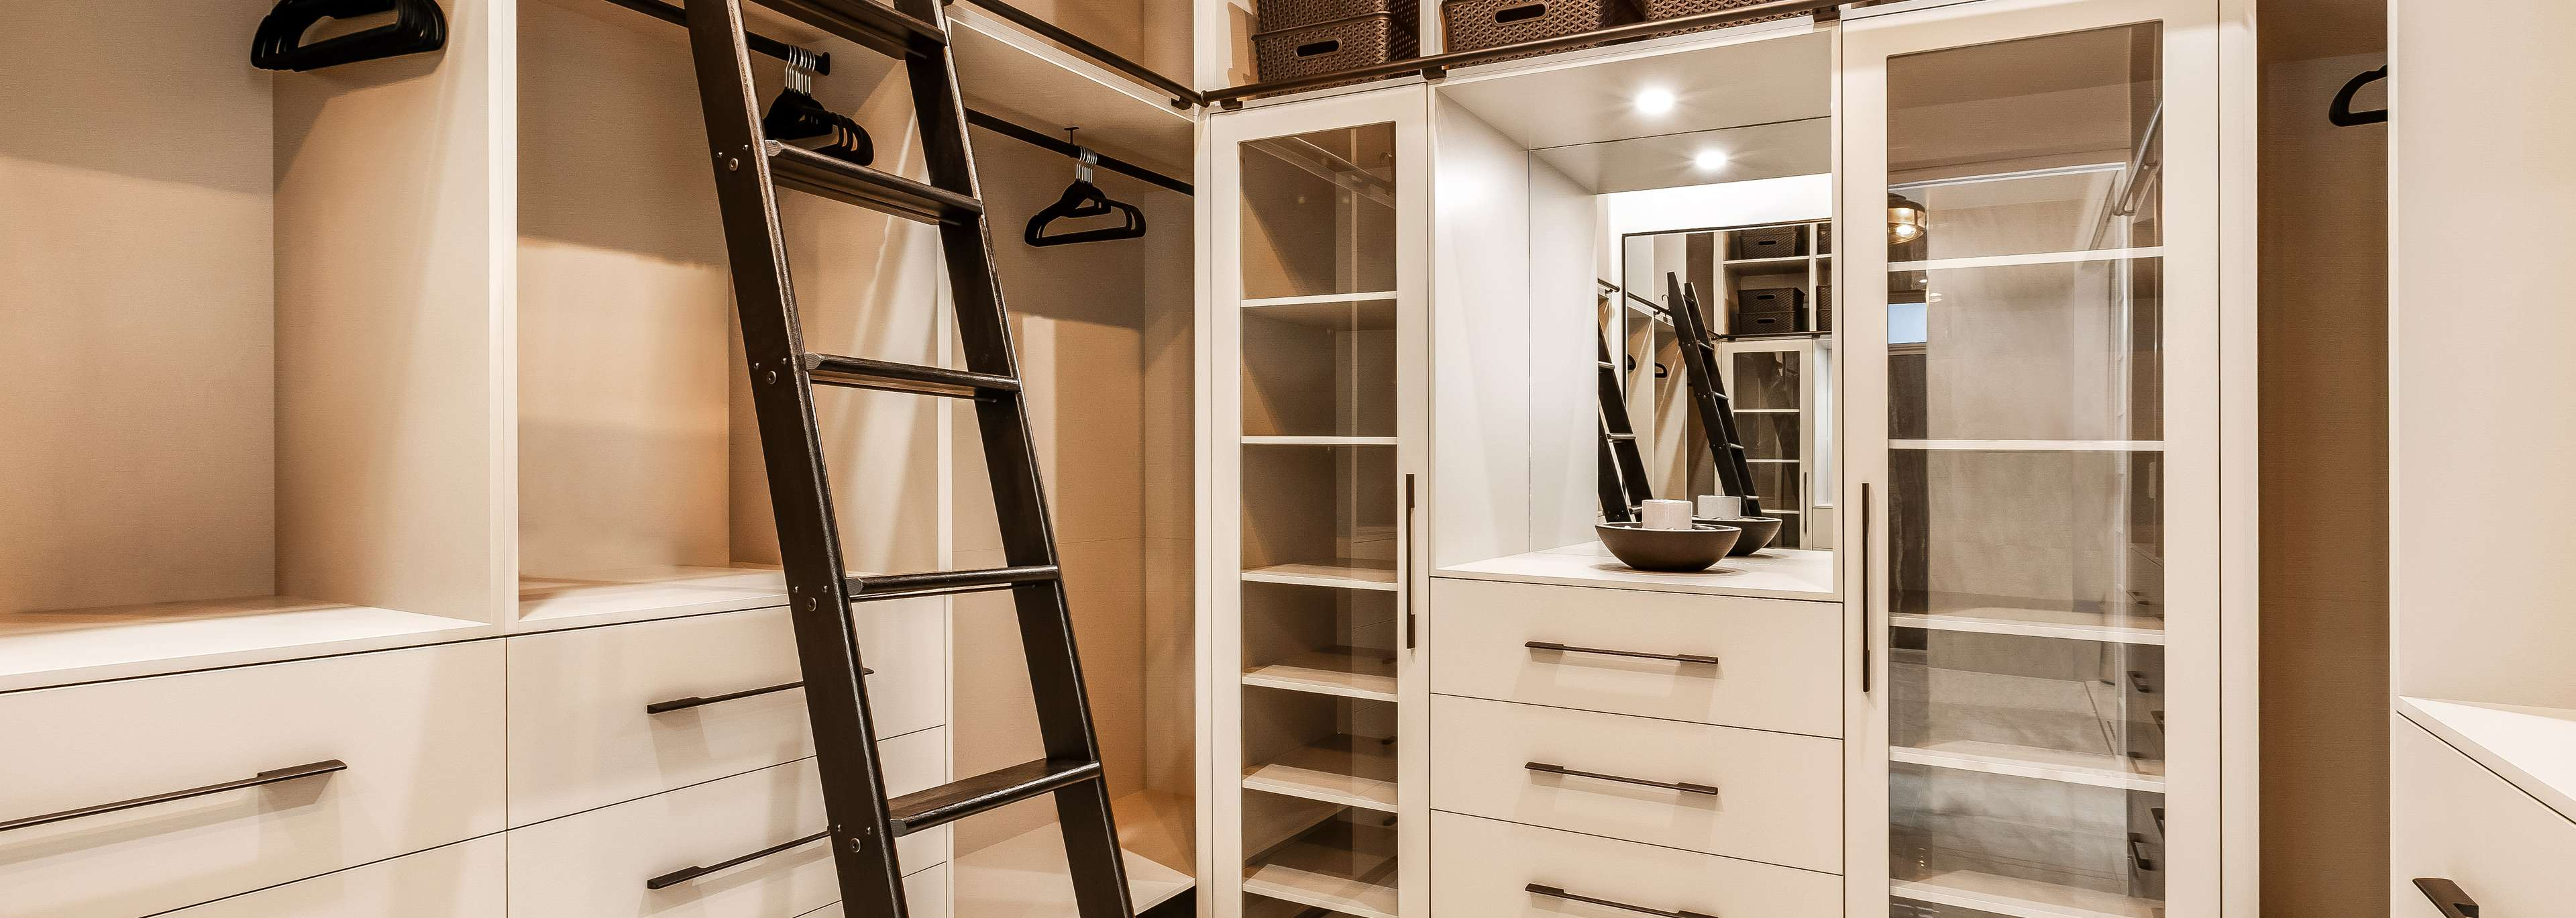 Cairns Specialized Cabinets